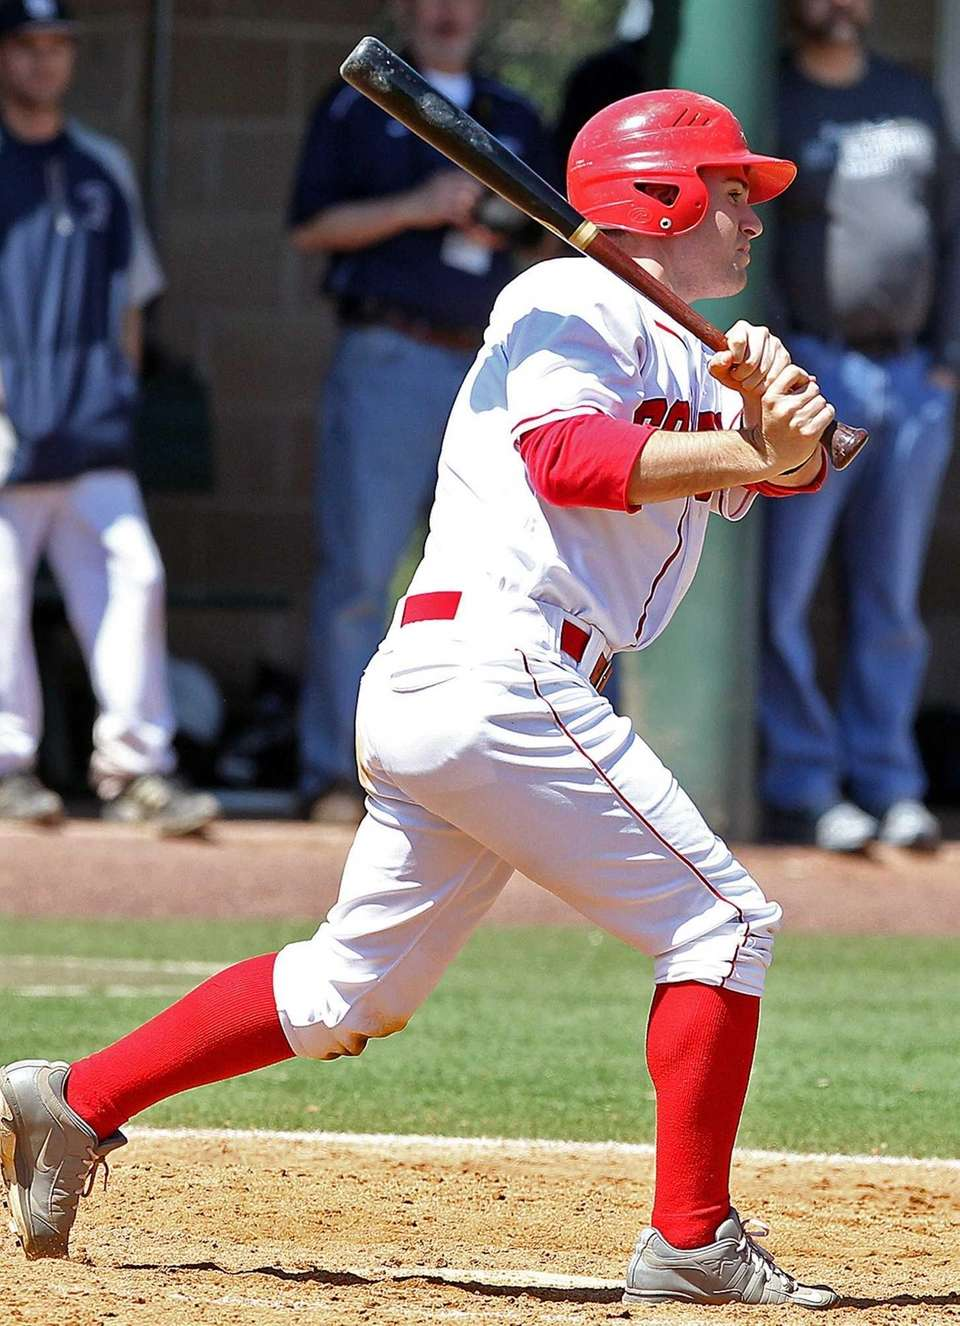 St. John the Baptist's Christopher Lemorocco drives in